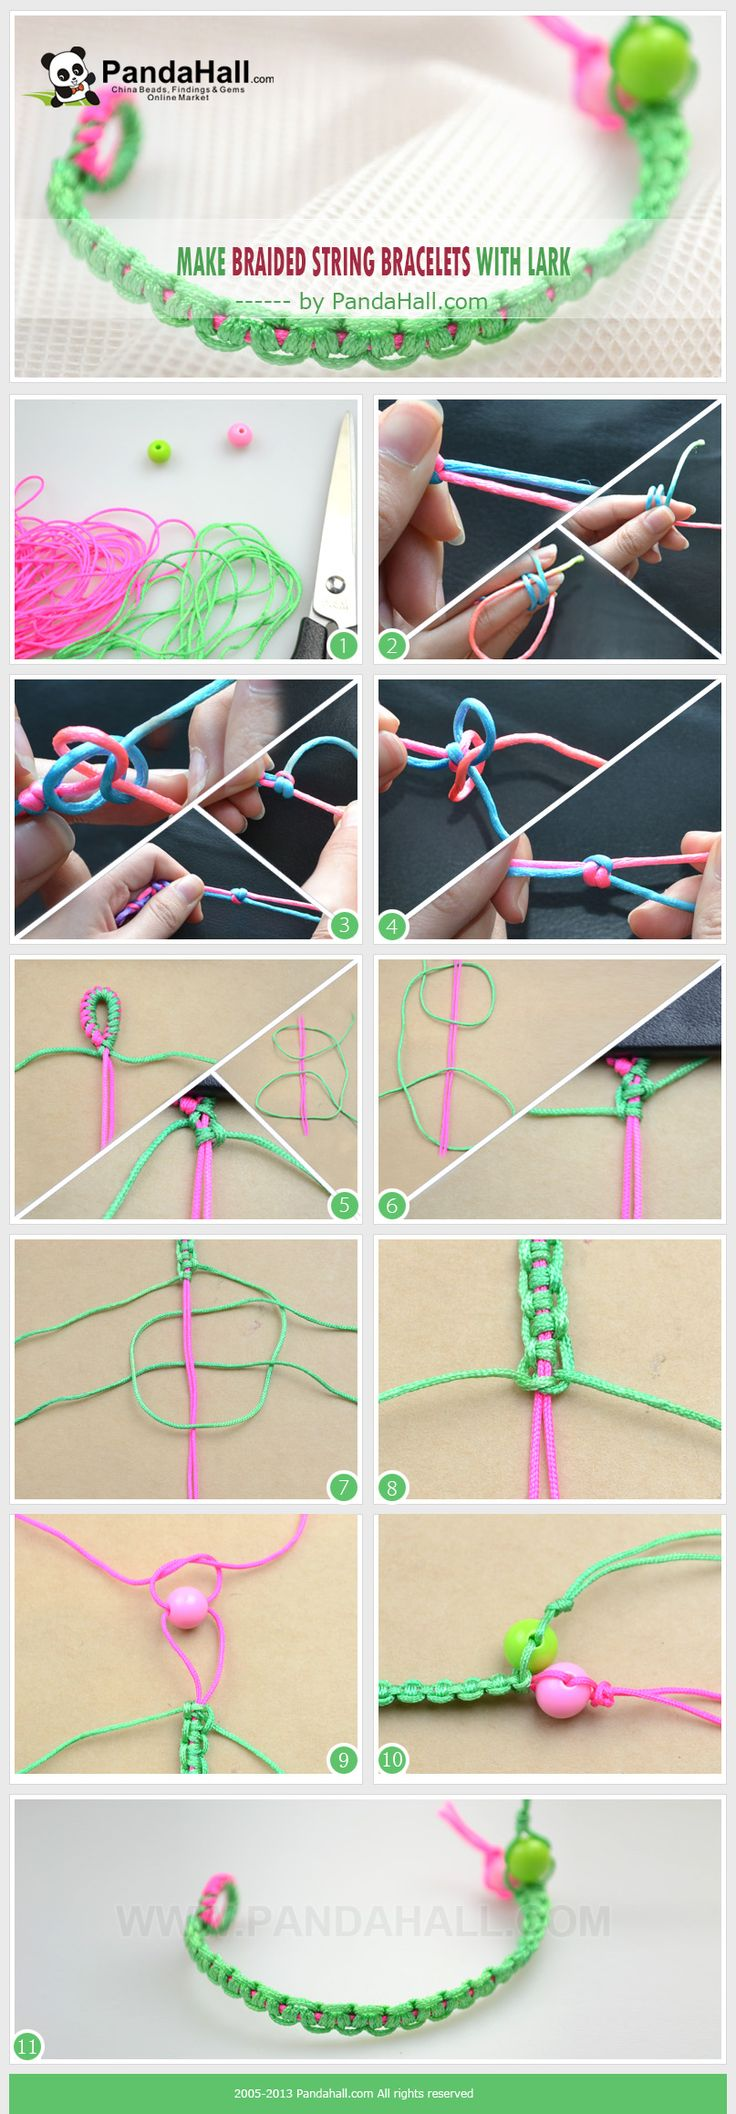 Today I will present you one kind of beautiful and simple string bracelets; this article is going to teach you how to make braided string bracelets with lark's head knots.